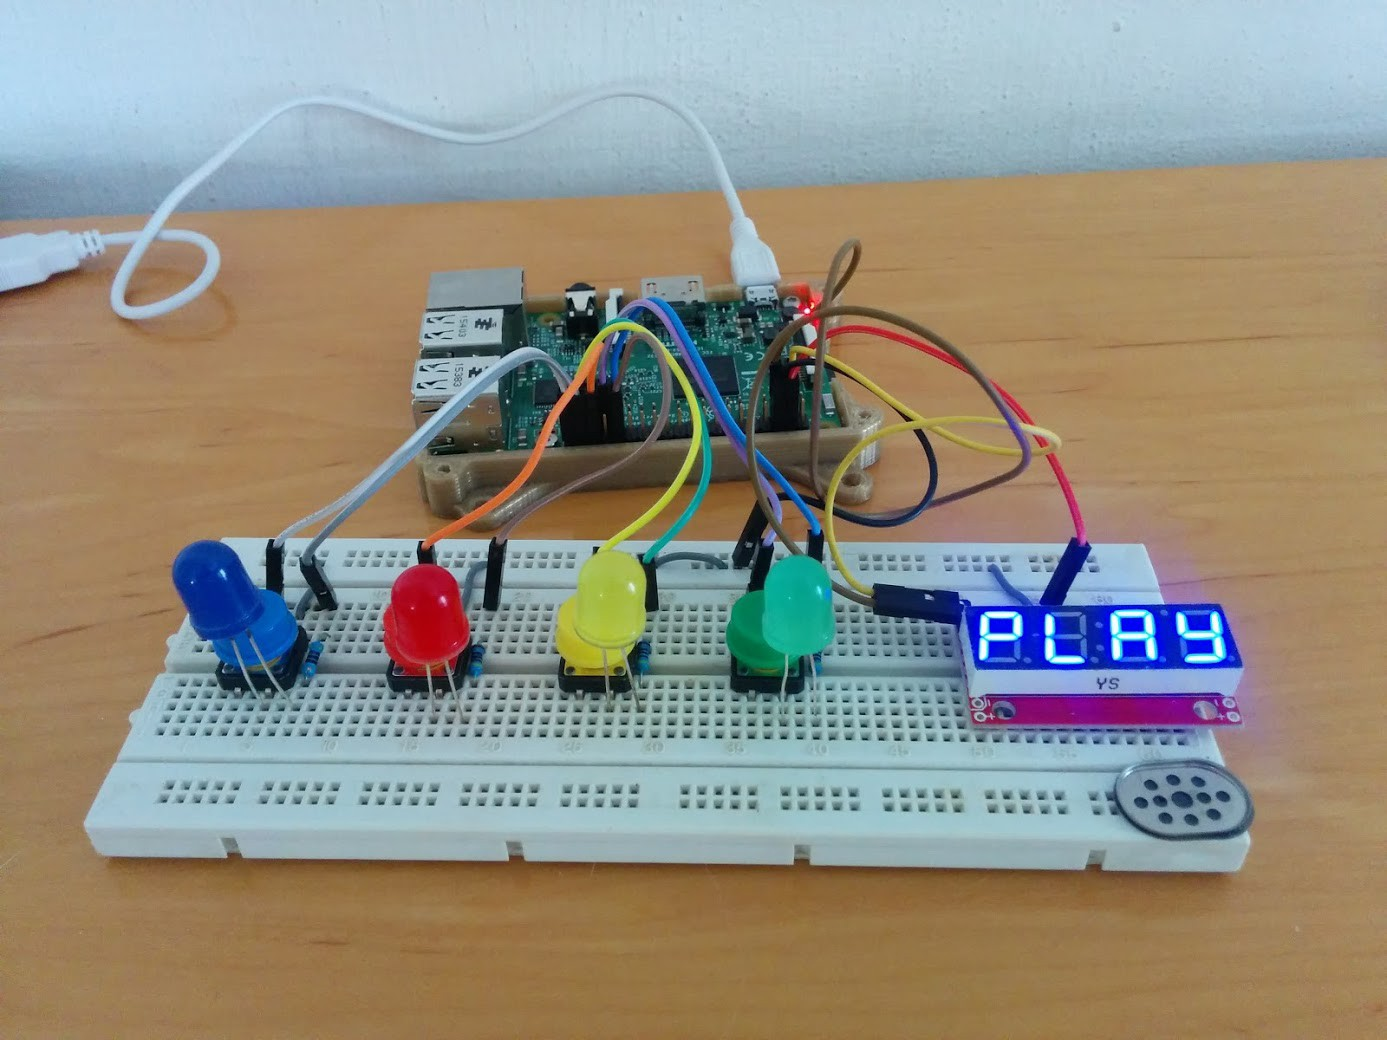 Im A Software Engineer Why Should I Care About Arduino Breadboard Clone Raspberry Pi Connected To Leds Buttons And Display Using